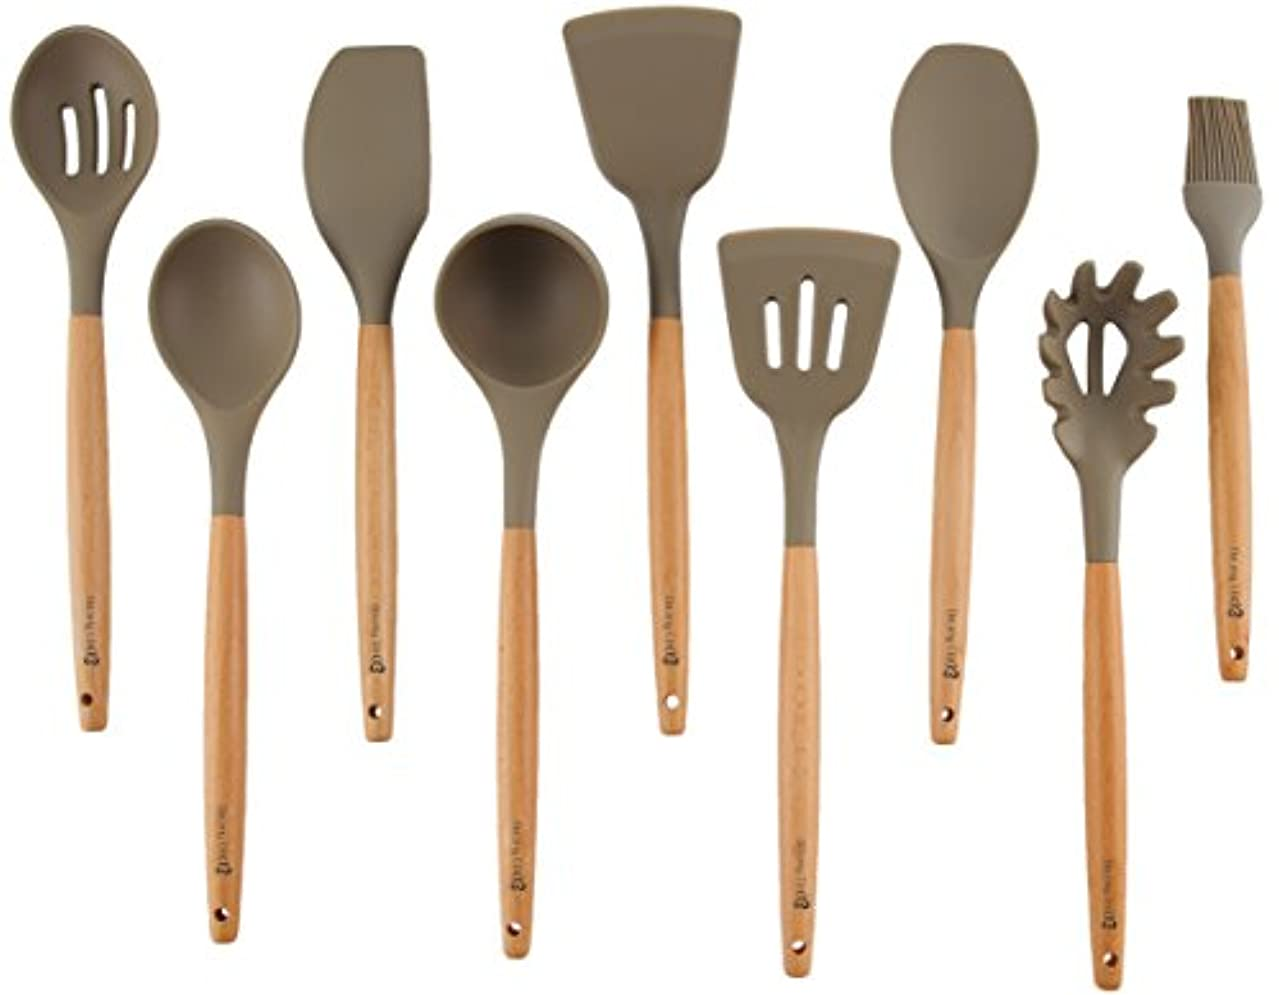 Deceny CB Kitchen Utensils Set Silicone Cooking Utensils for Nonstick Cookware 9 Piece Cooking Set